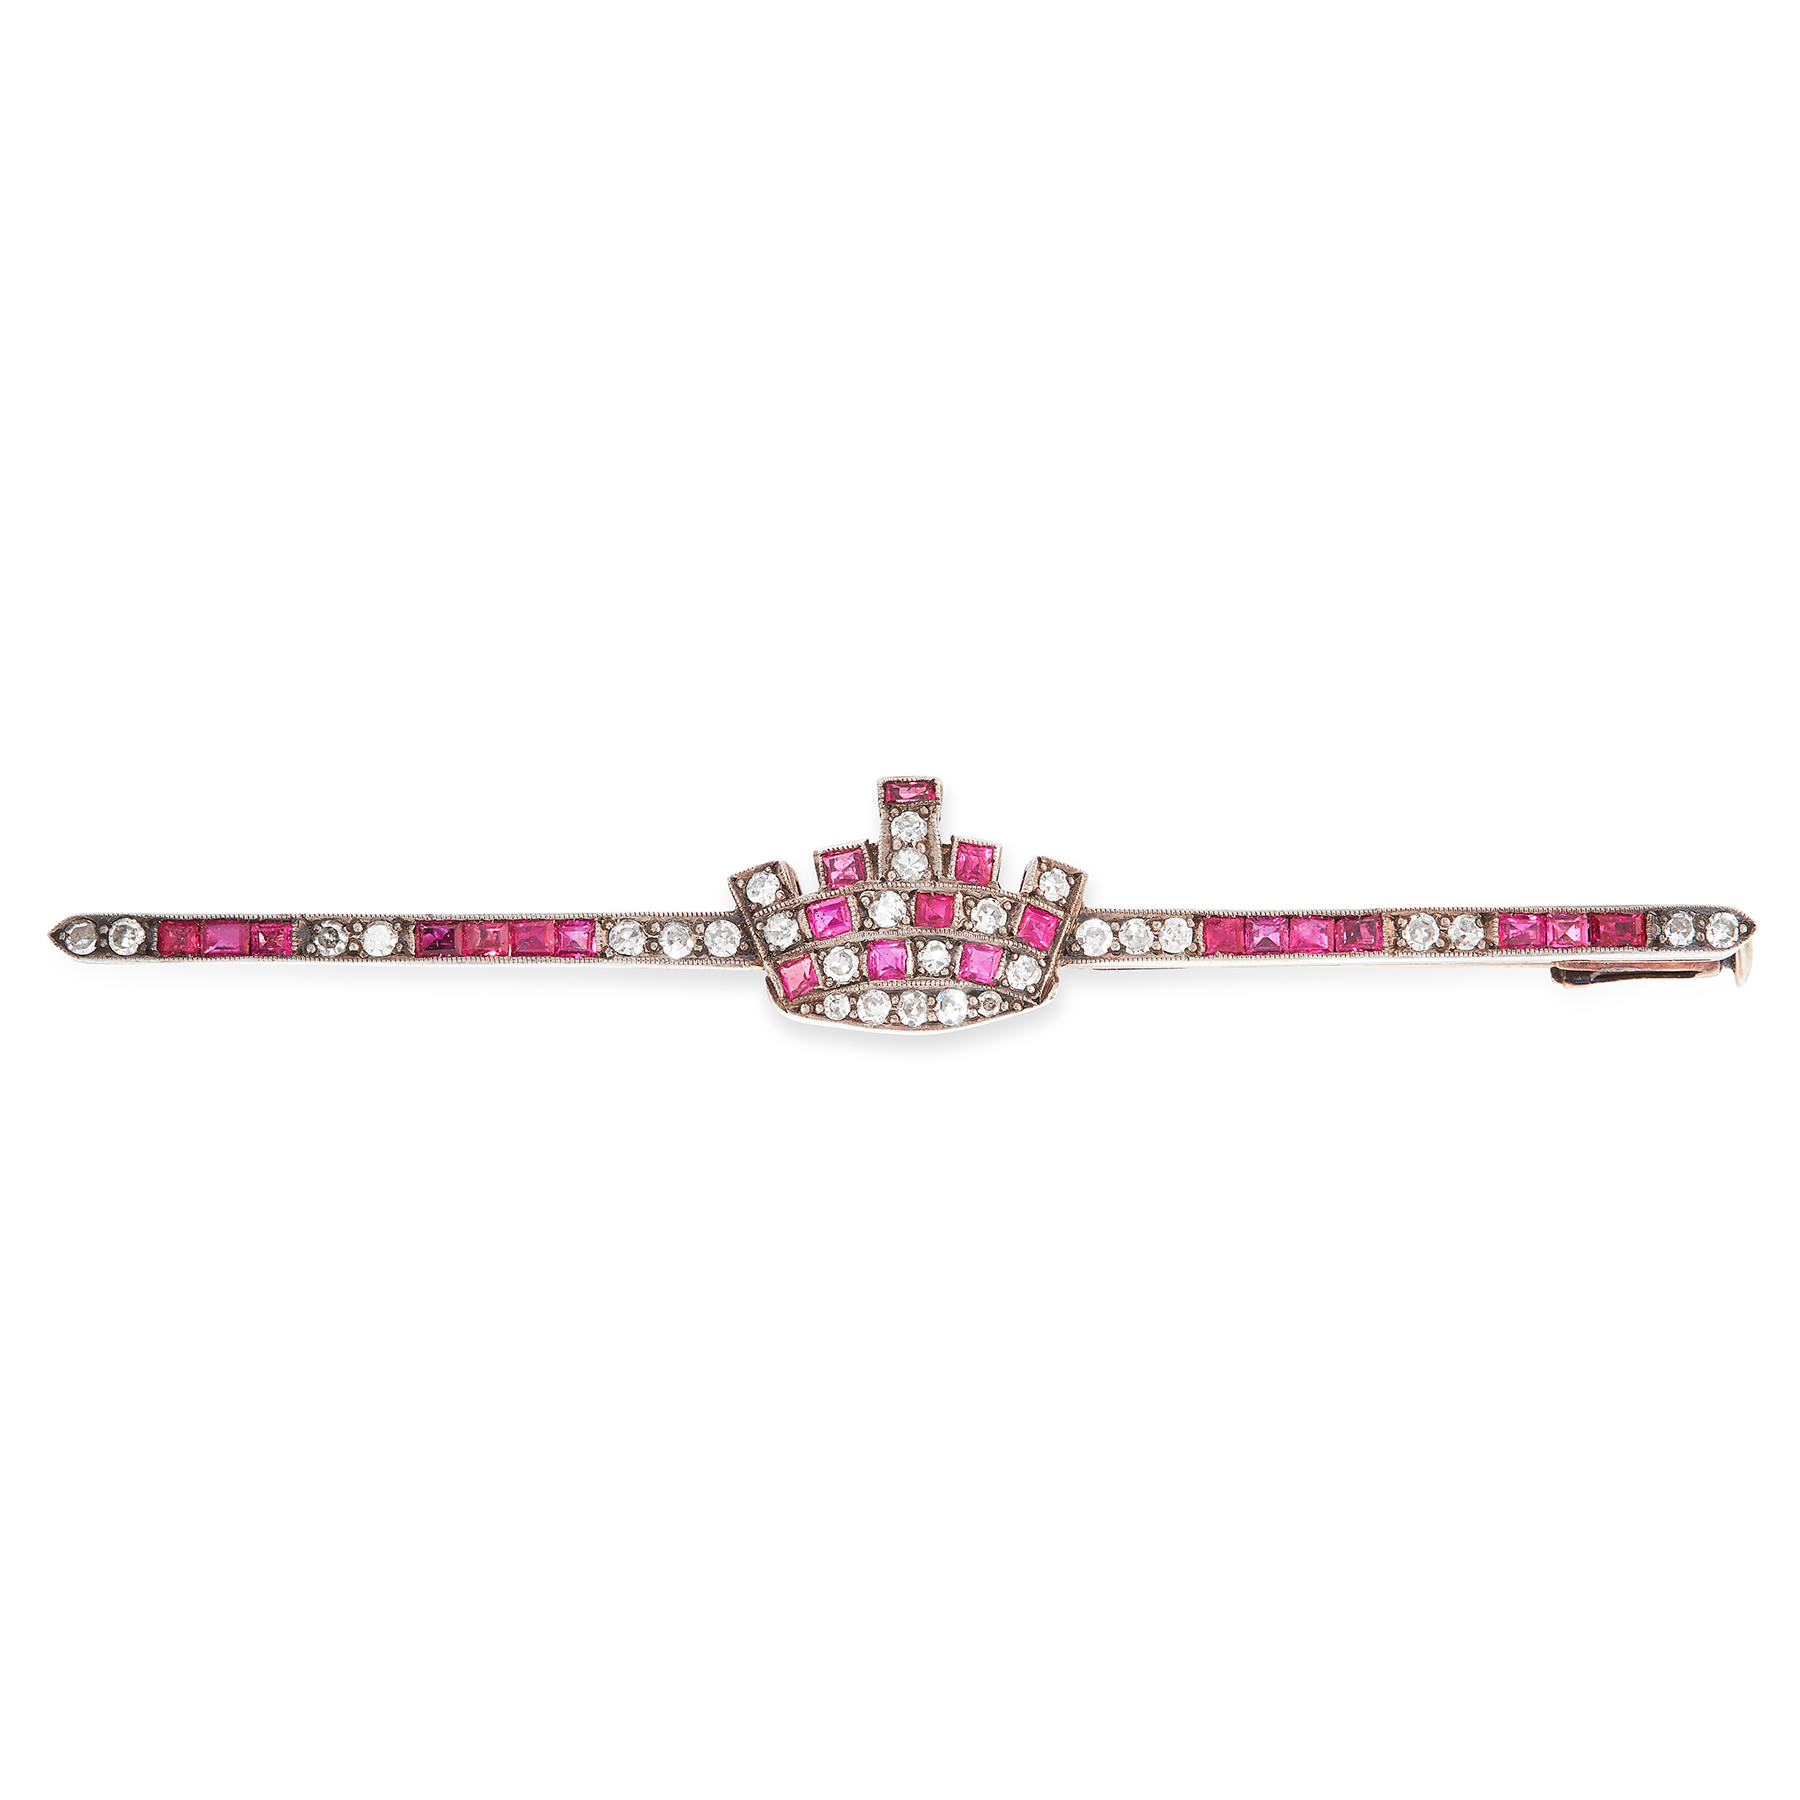 AN ANTIQUE RUBY AND DIAMOND BROOCH in yellow gold, the plain bar set with alternating rows of step